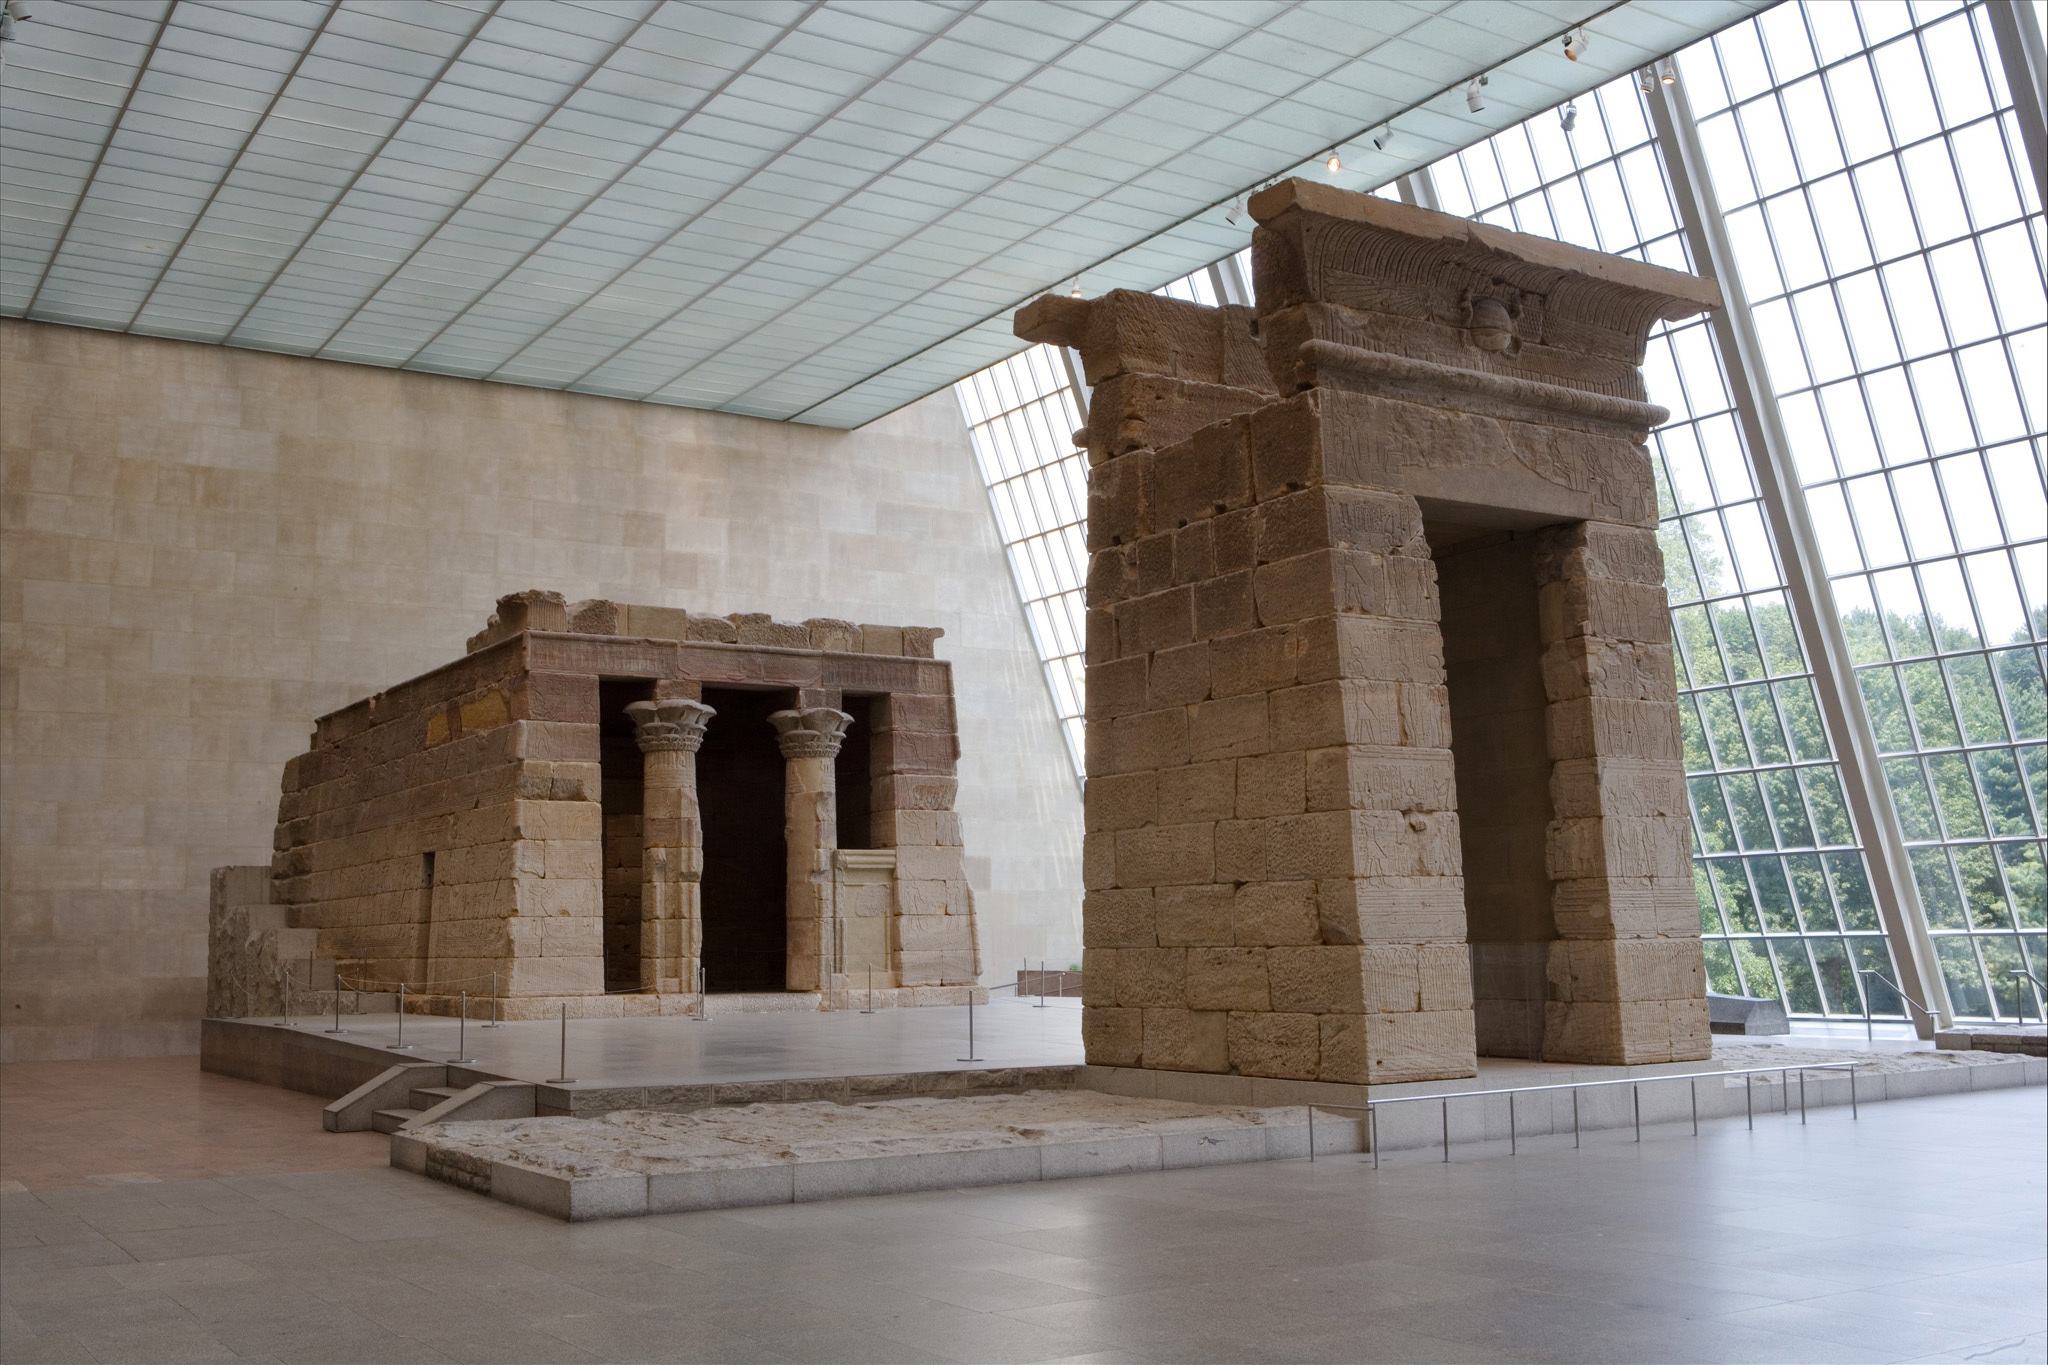 The Metropolitan Museum of Art, Temple of Dendur